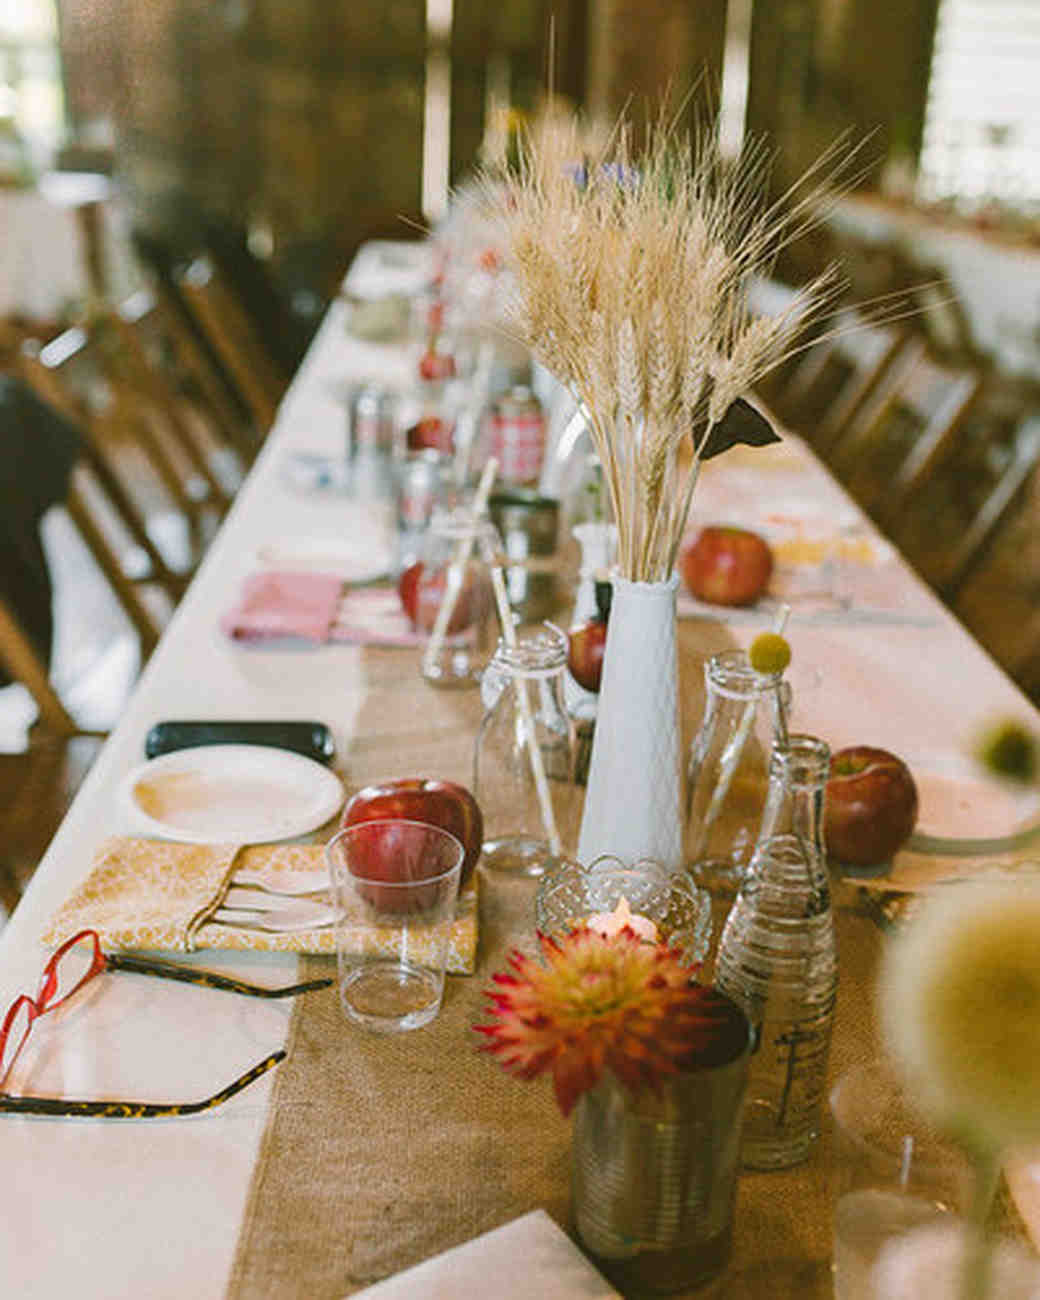 Fall Wedding Ideas Table Decorations: 51 Rustic Fall Wedding Centerpieces